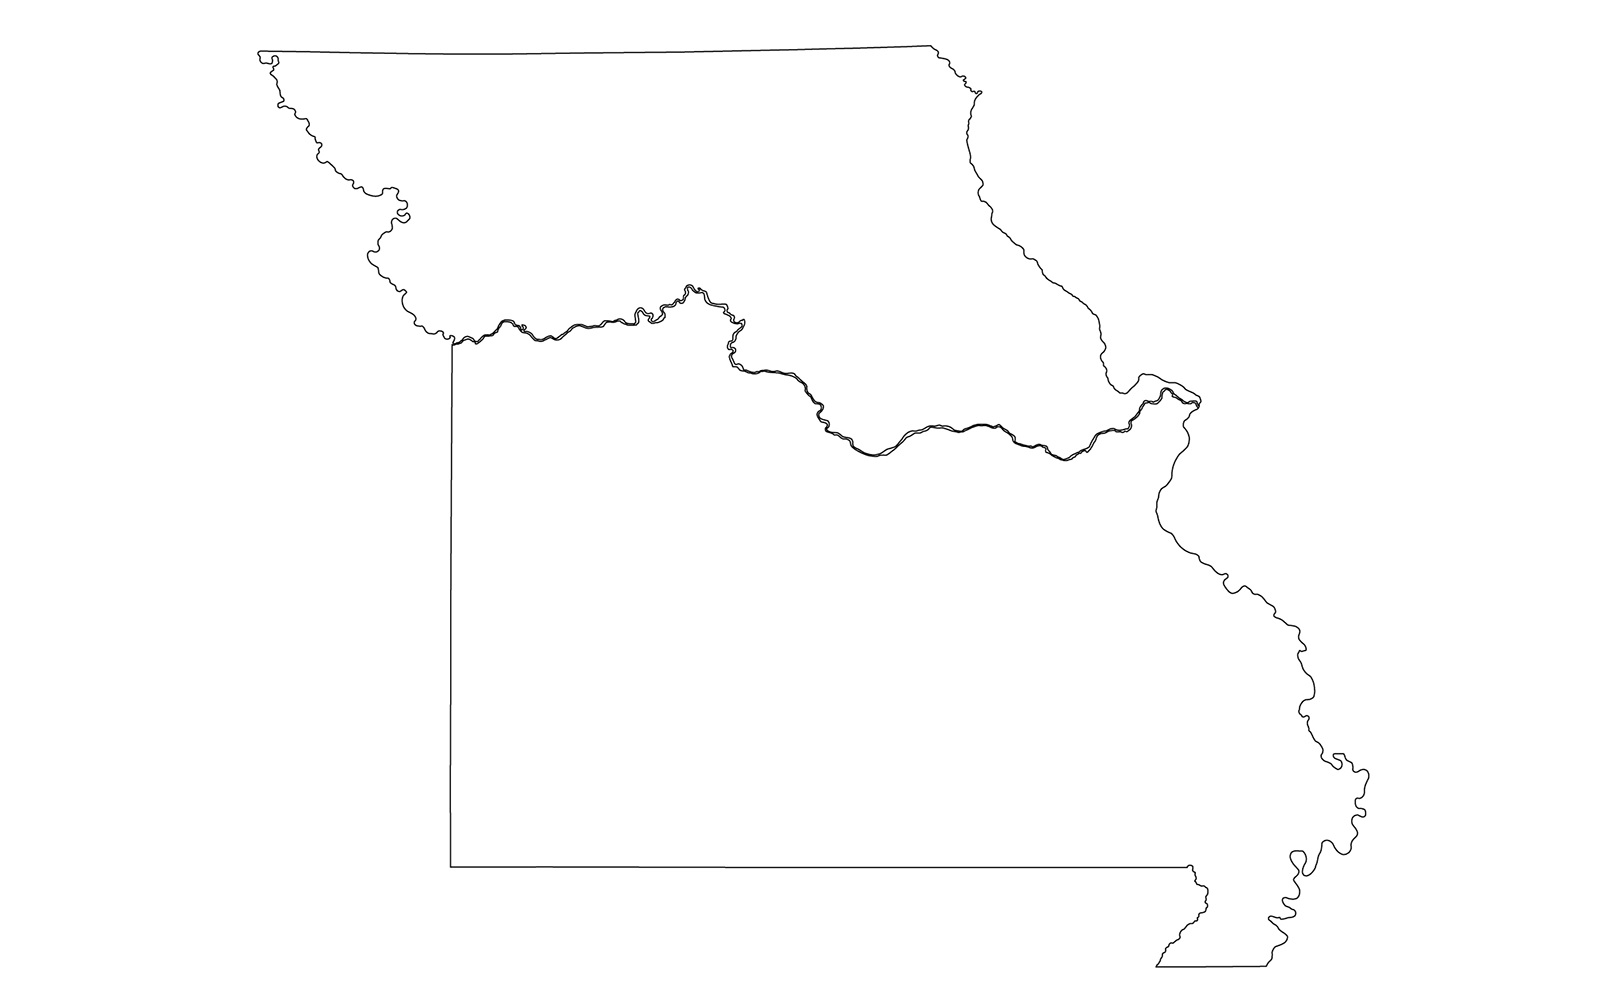 Missouri blank outline Map | Large Printable High Resolution and Standard Map